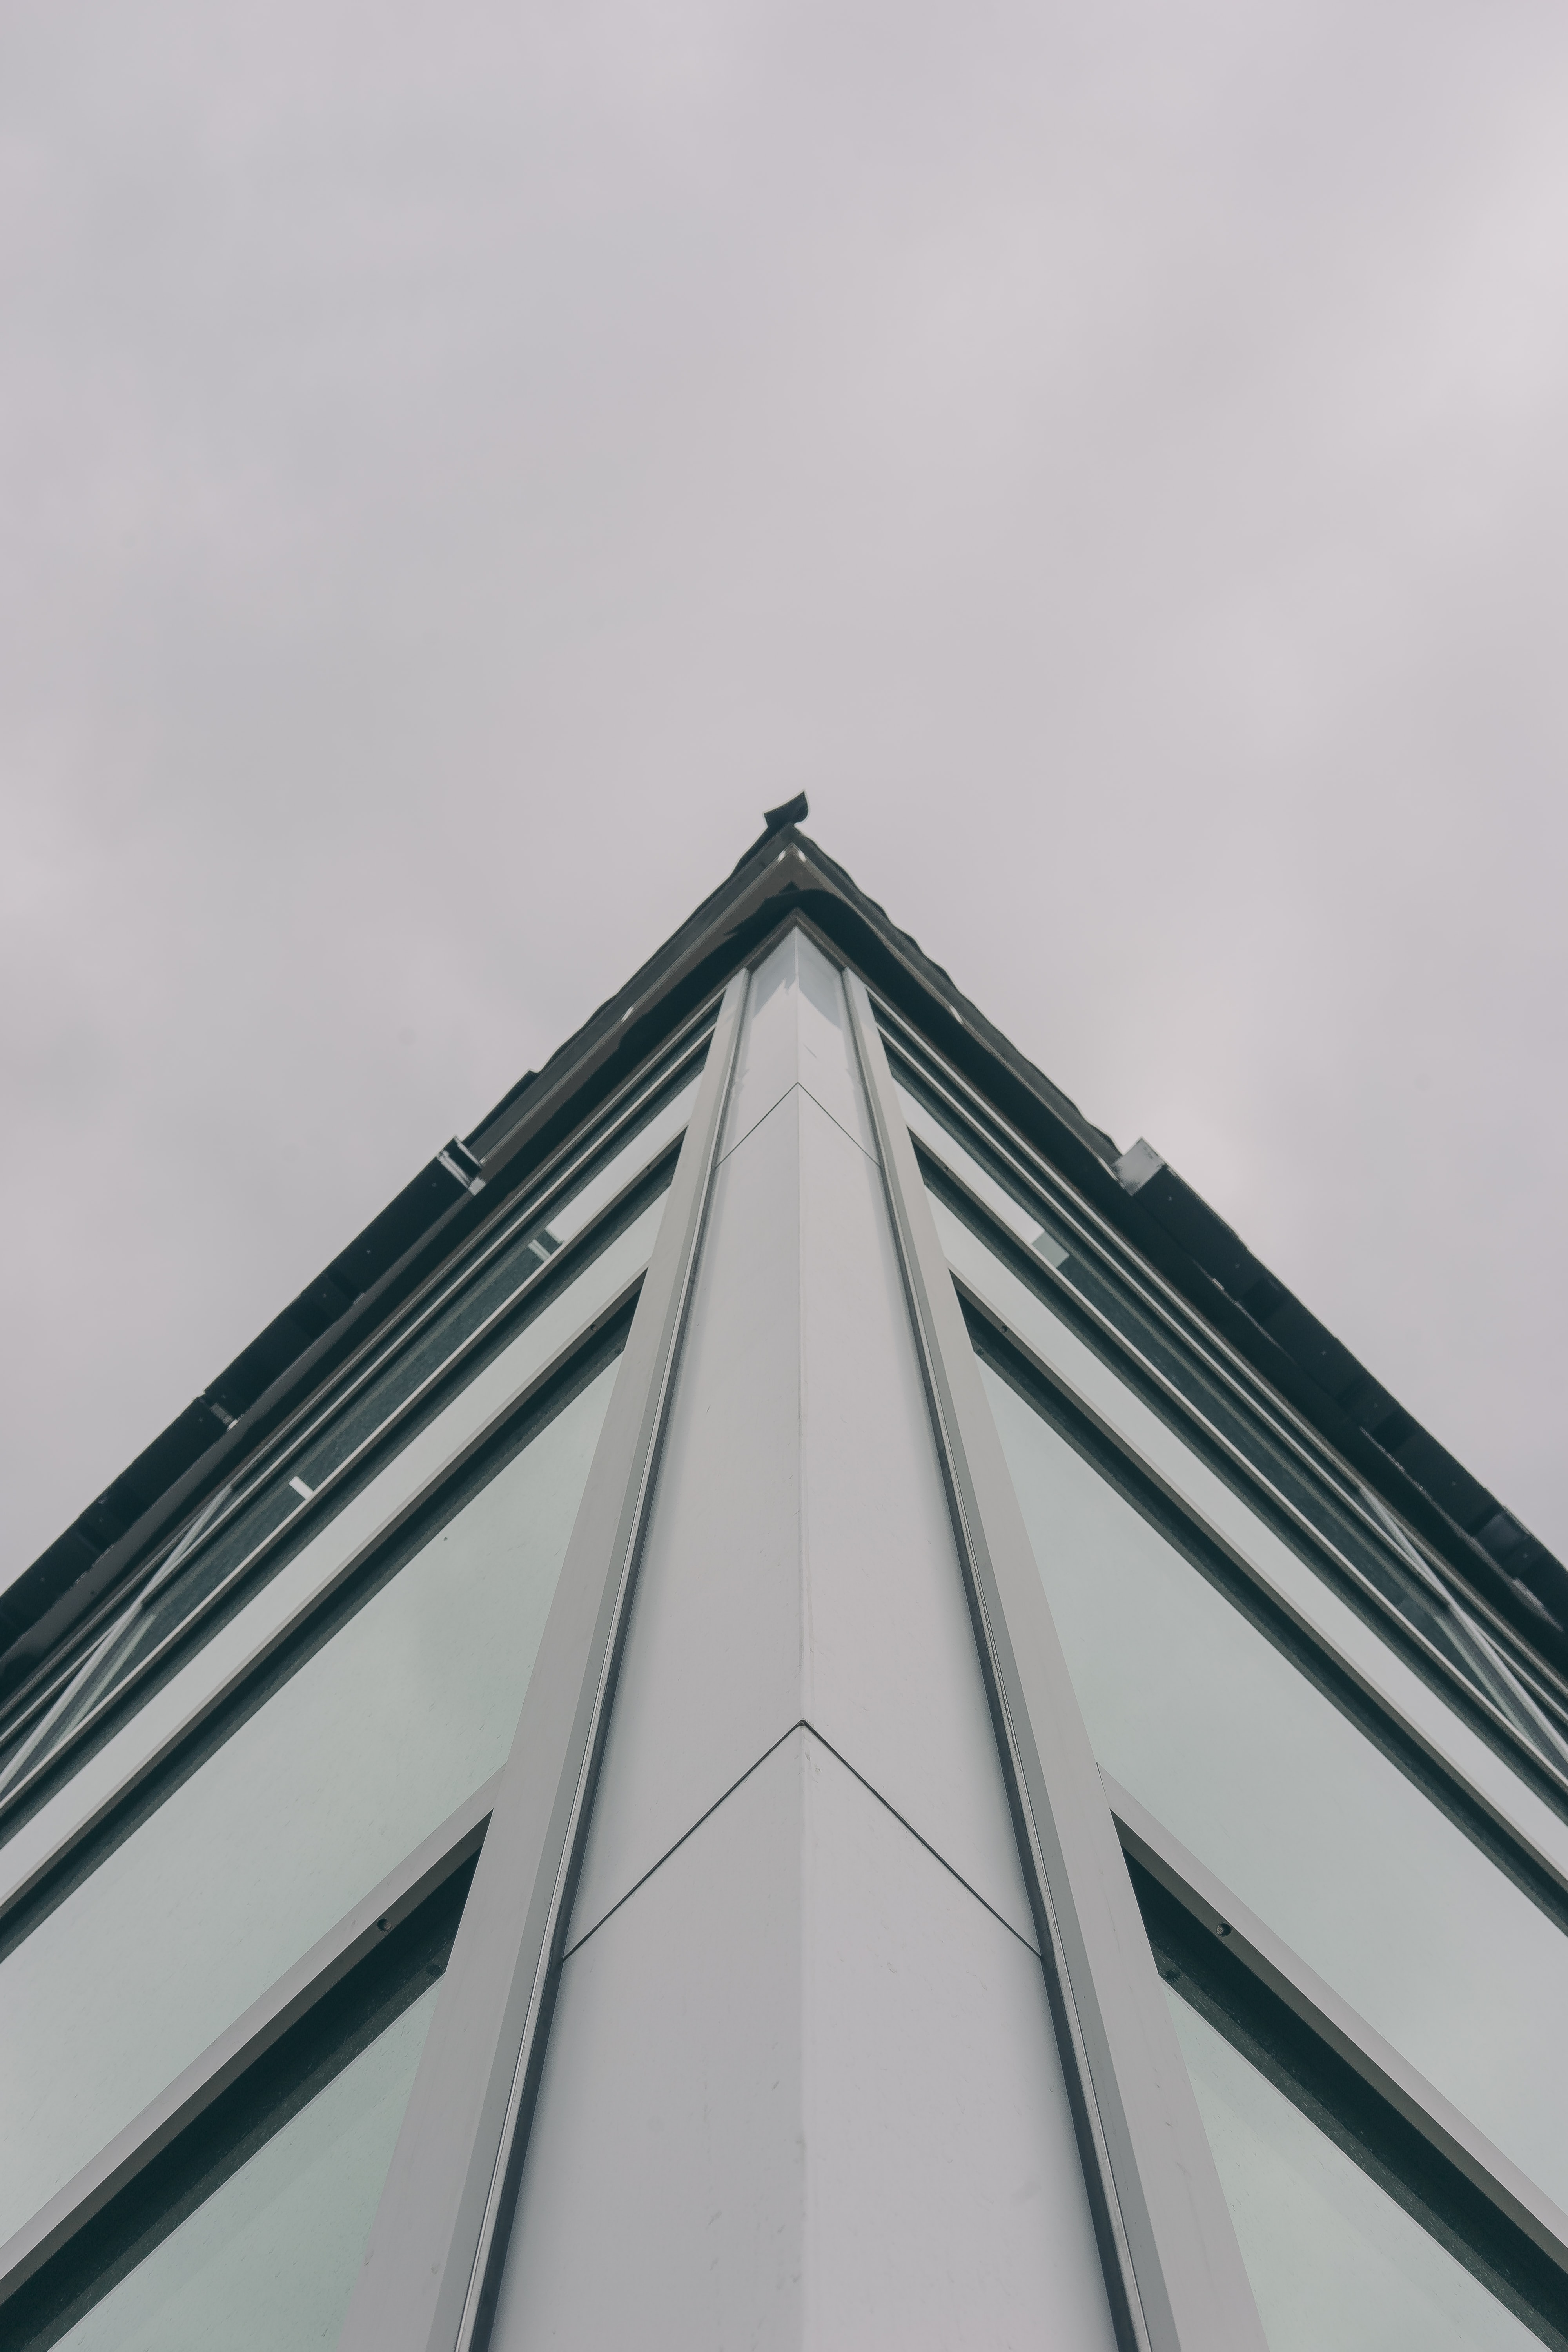 A low-angle shot of the edge of a building